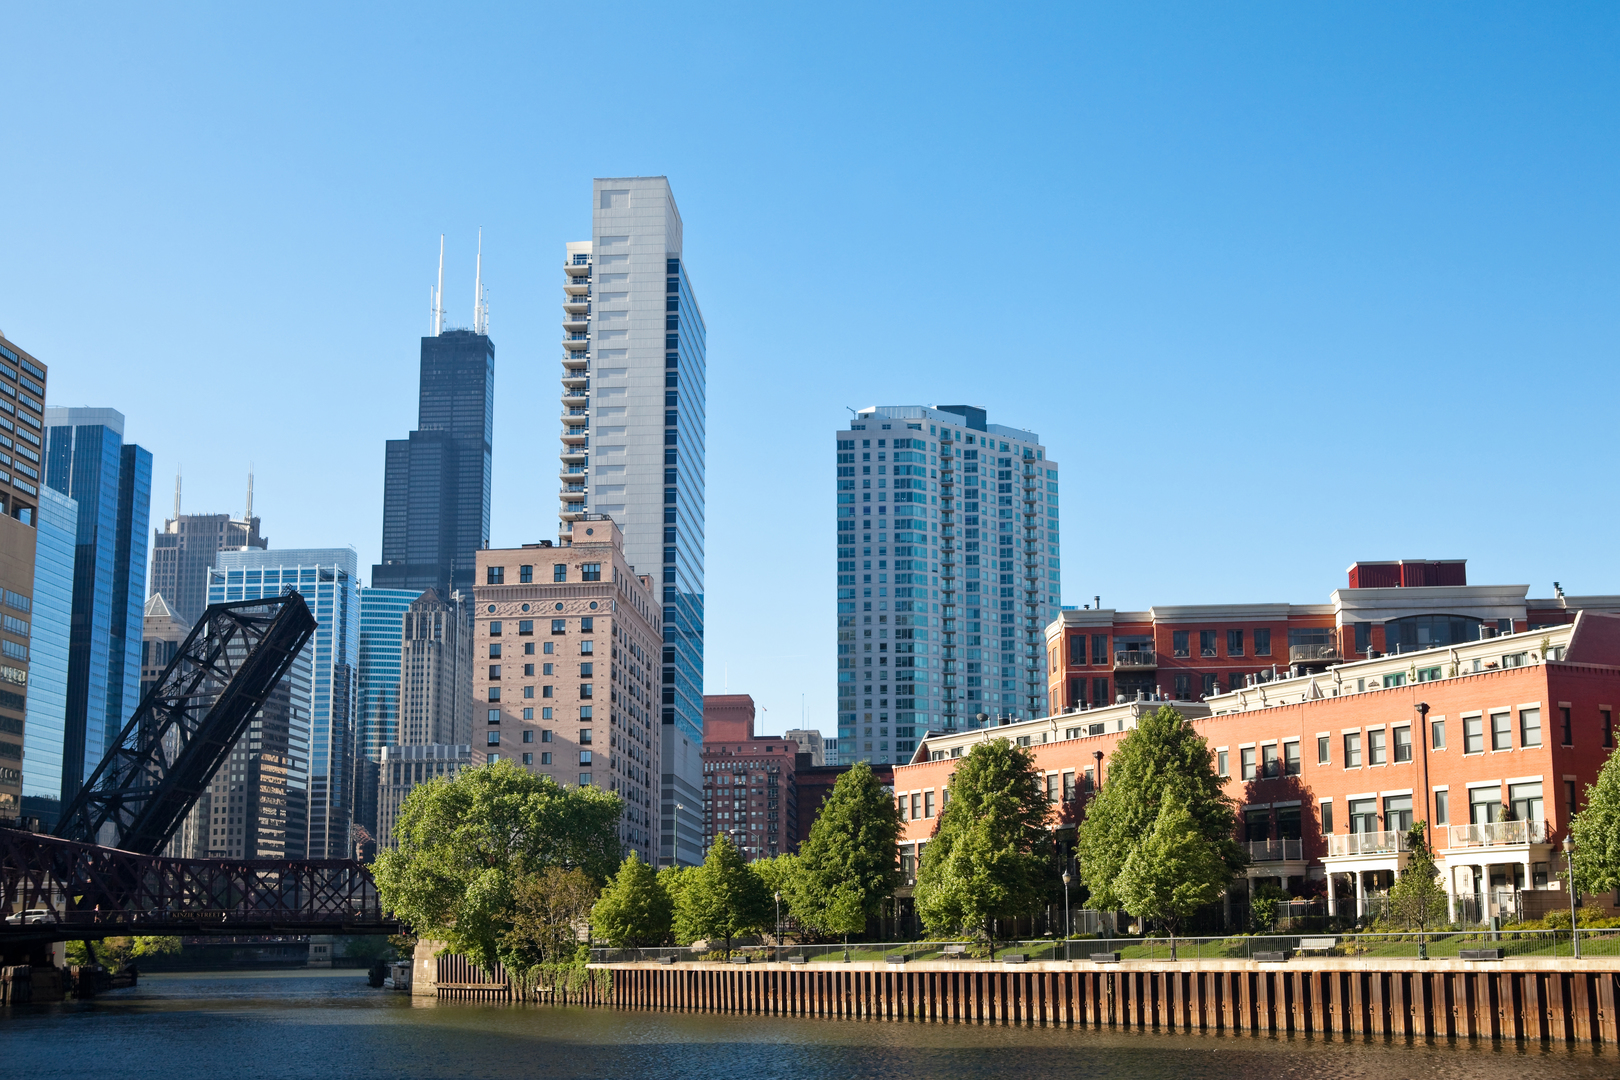 473 NORTH CANAL STREET #TH, CHICAGO, IL 60654